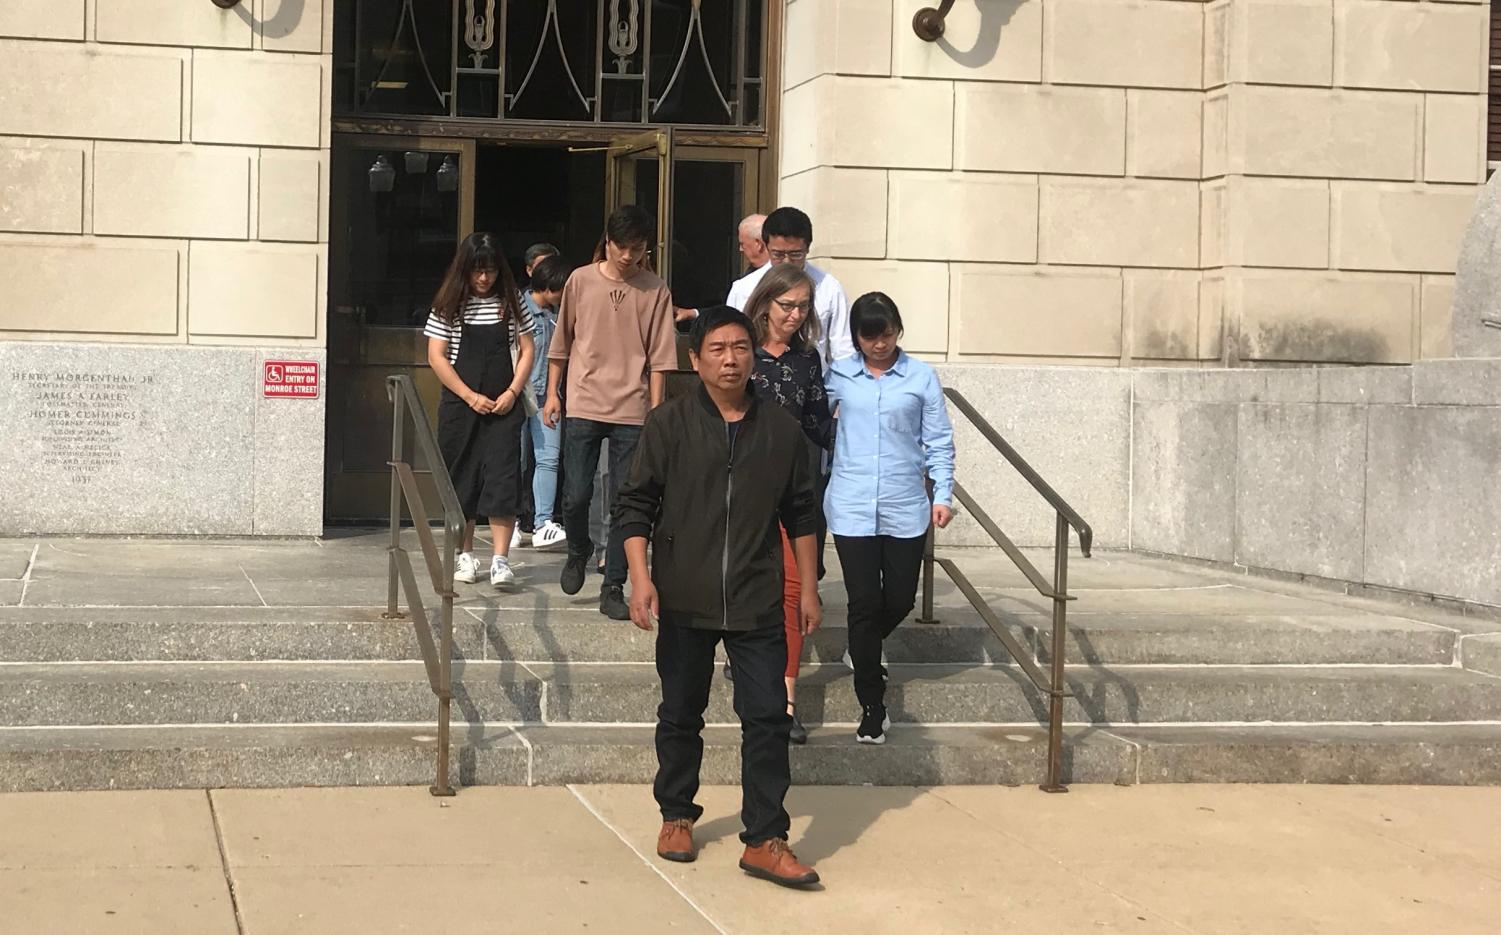 Yingying Zhang's family walks out of the courtroom Monday. Walking in the front is Yingying's father, Ronggao. Her brother, Xinyang Zhang and mother, Lifeng Ye follow with boyfriend, Xiaolin Hou.